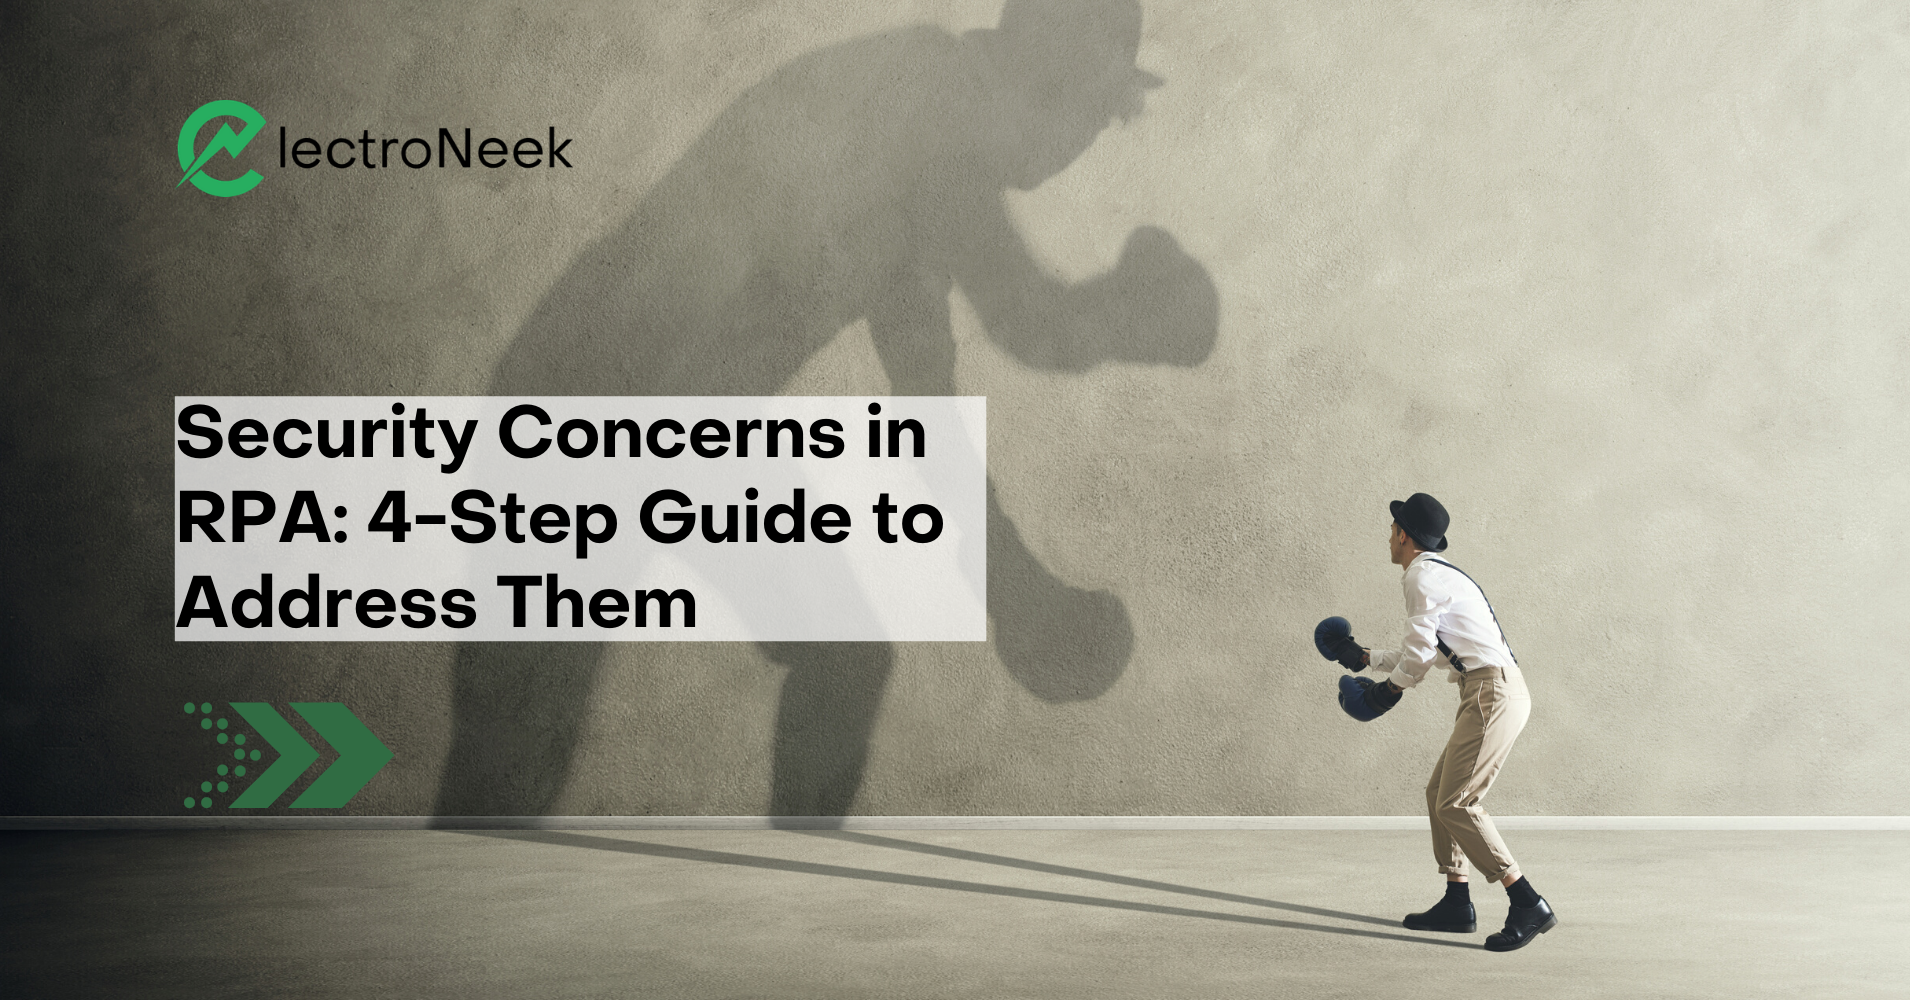 Security Concerns in RPA: 4-Step Guide to Address Them